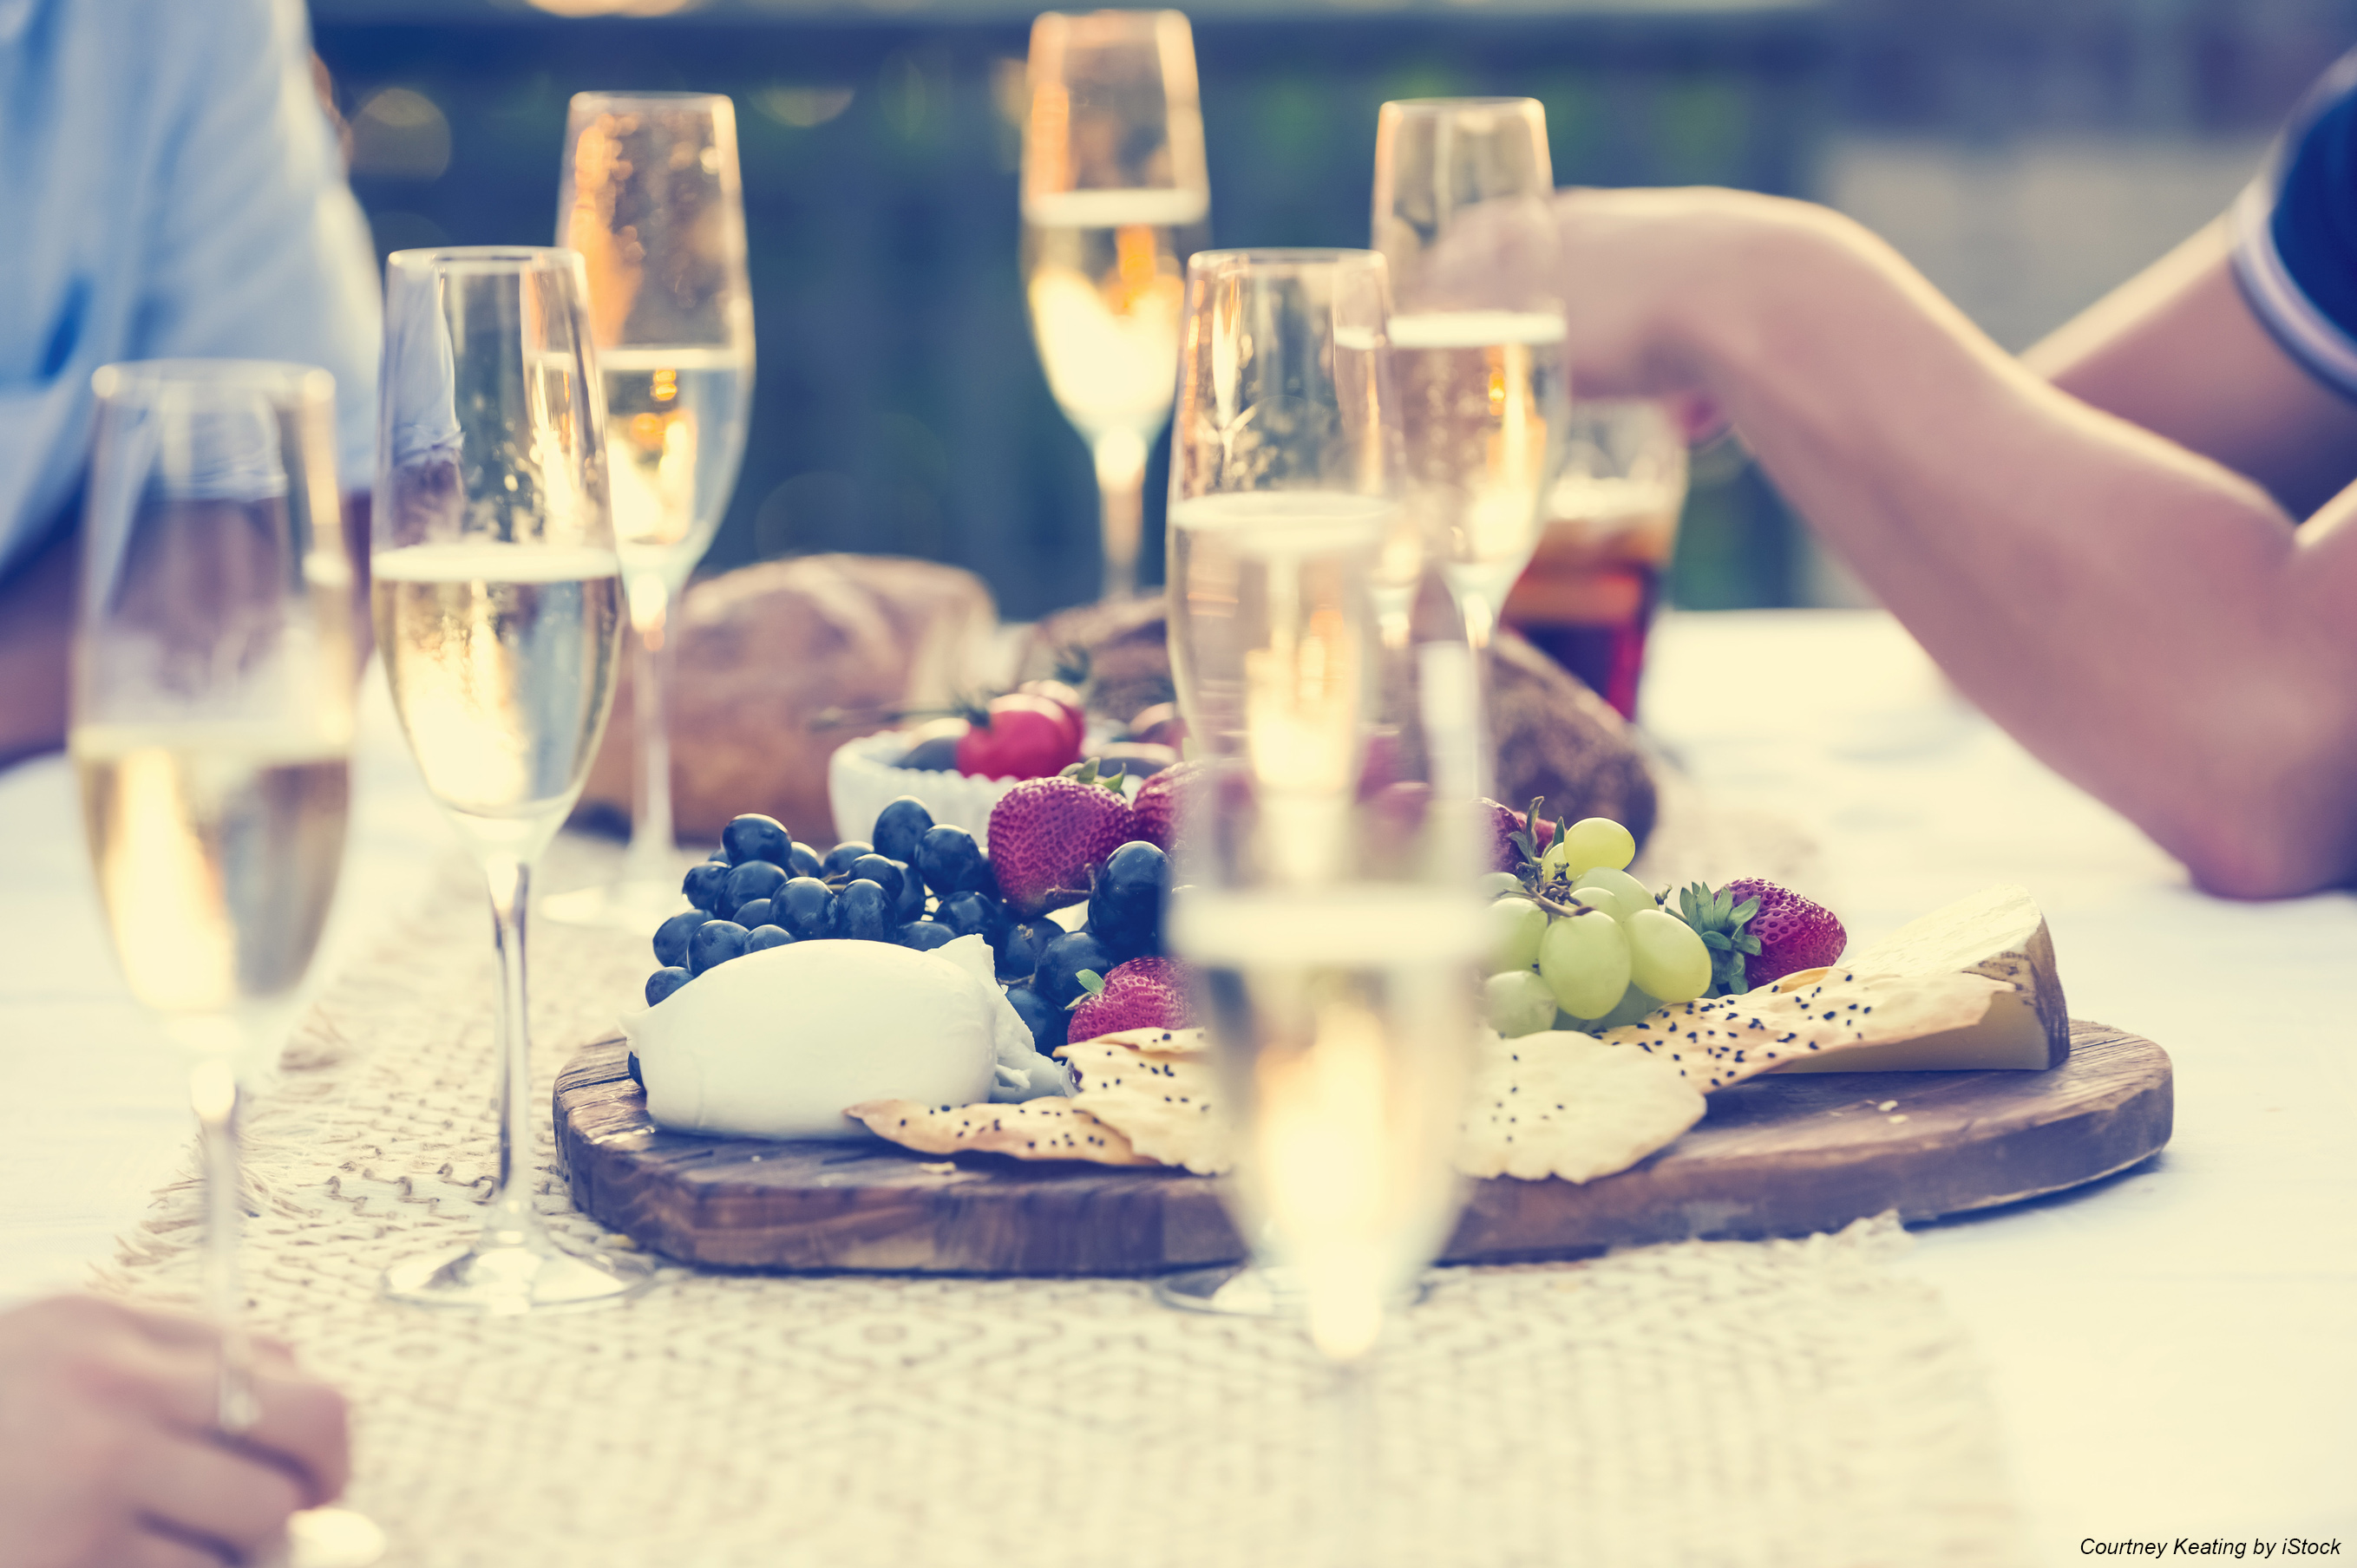 Group of friends drinking champagne. They are having a dinner party at sunset with a cheese and fruit platter. They are outdoors